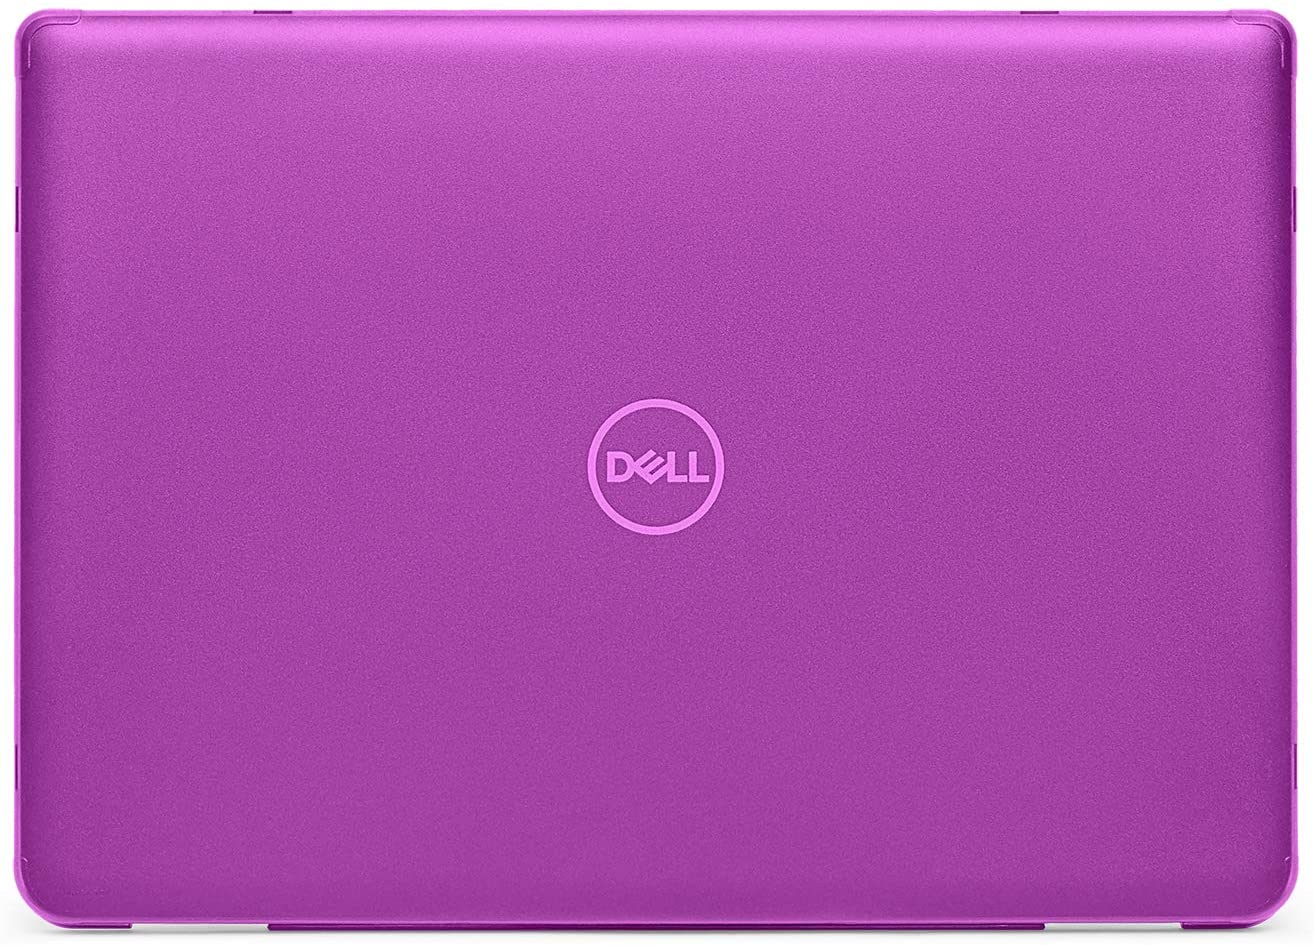 "mCover Hard Shell Case for 14"" Dell Latitude 3400 Business Laptop Computers Released After March 2019 (NOT Compatible with Other Dell Latitude Computers) (Purple)"